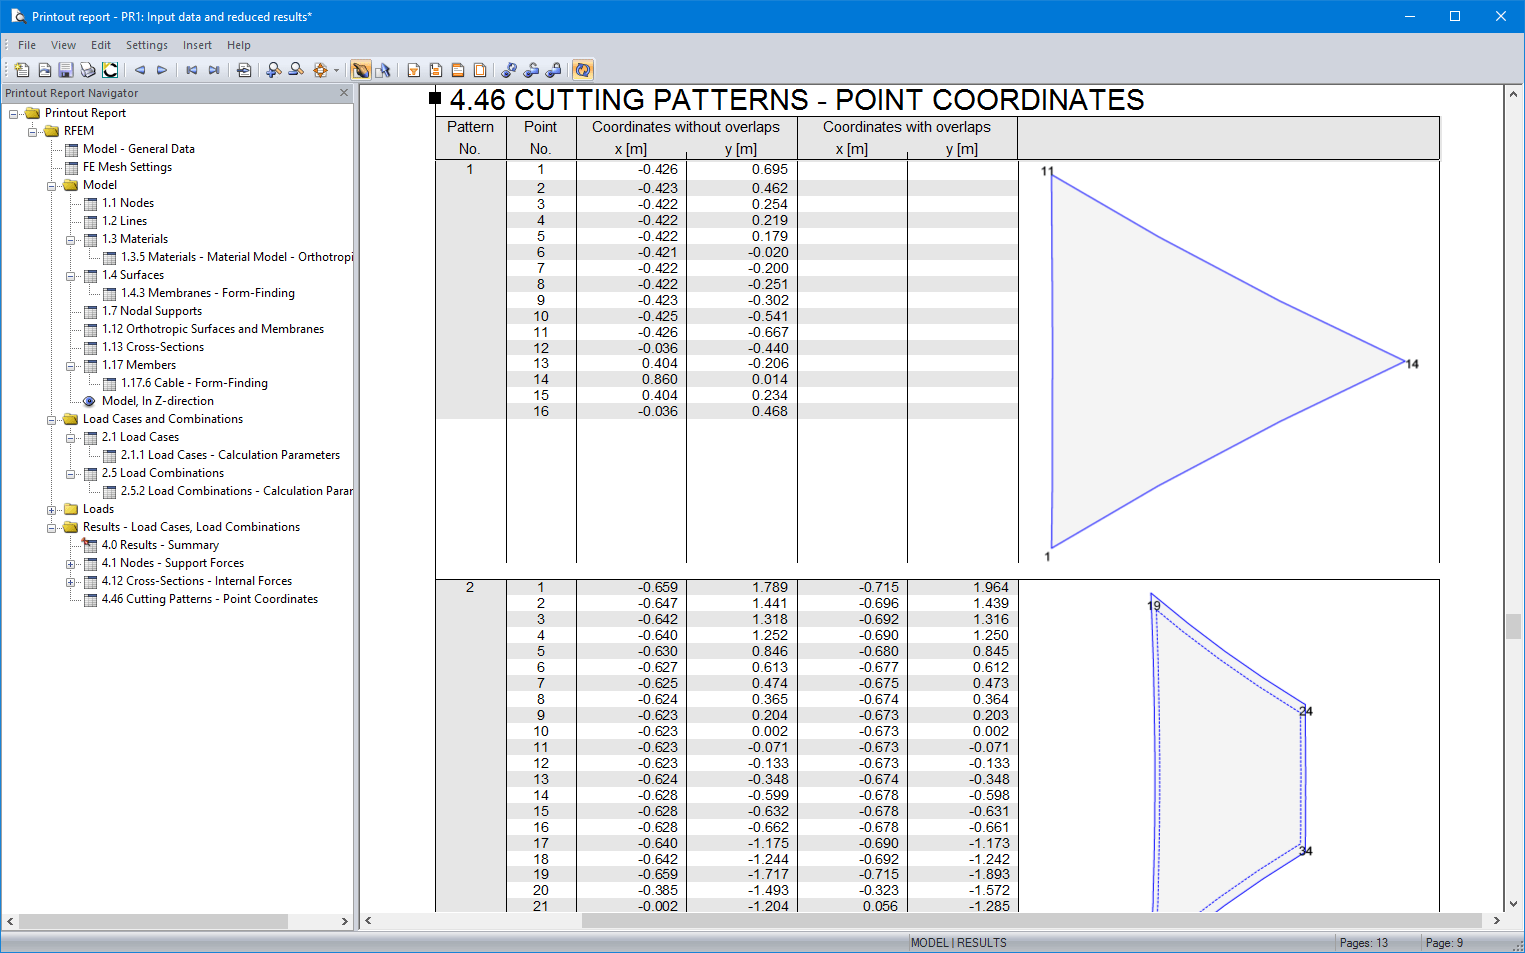 Cutting pattern in printout report